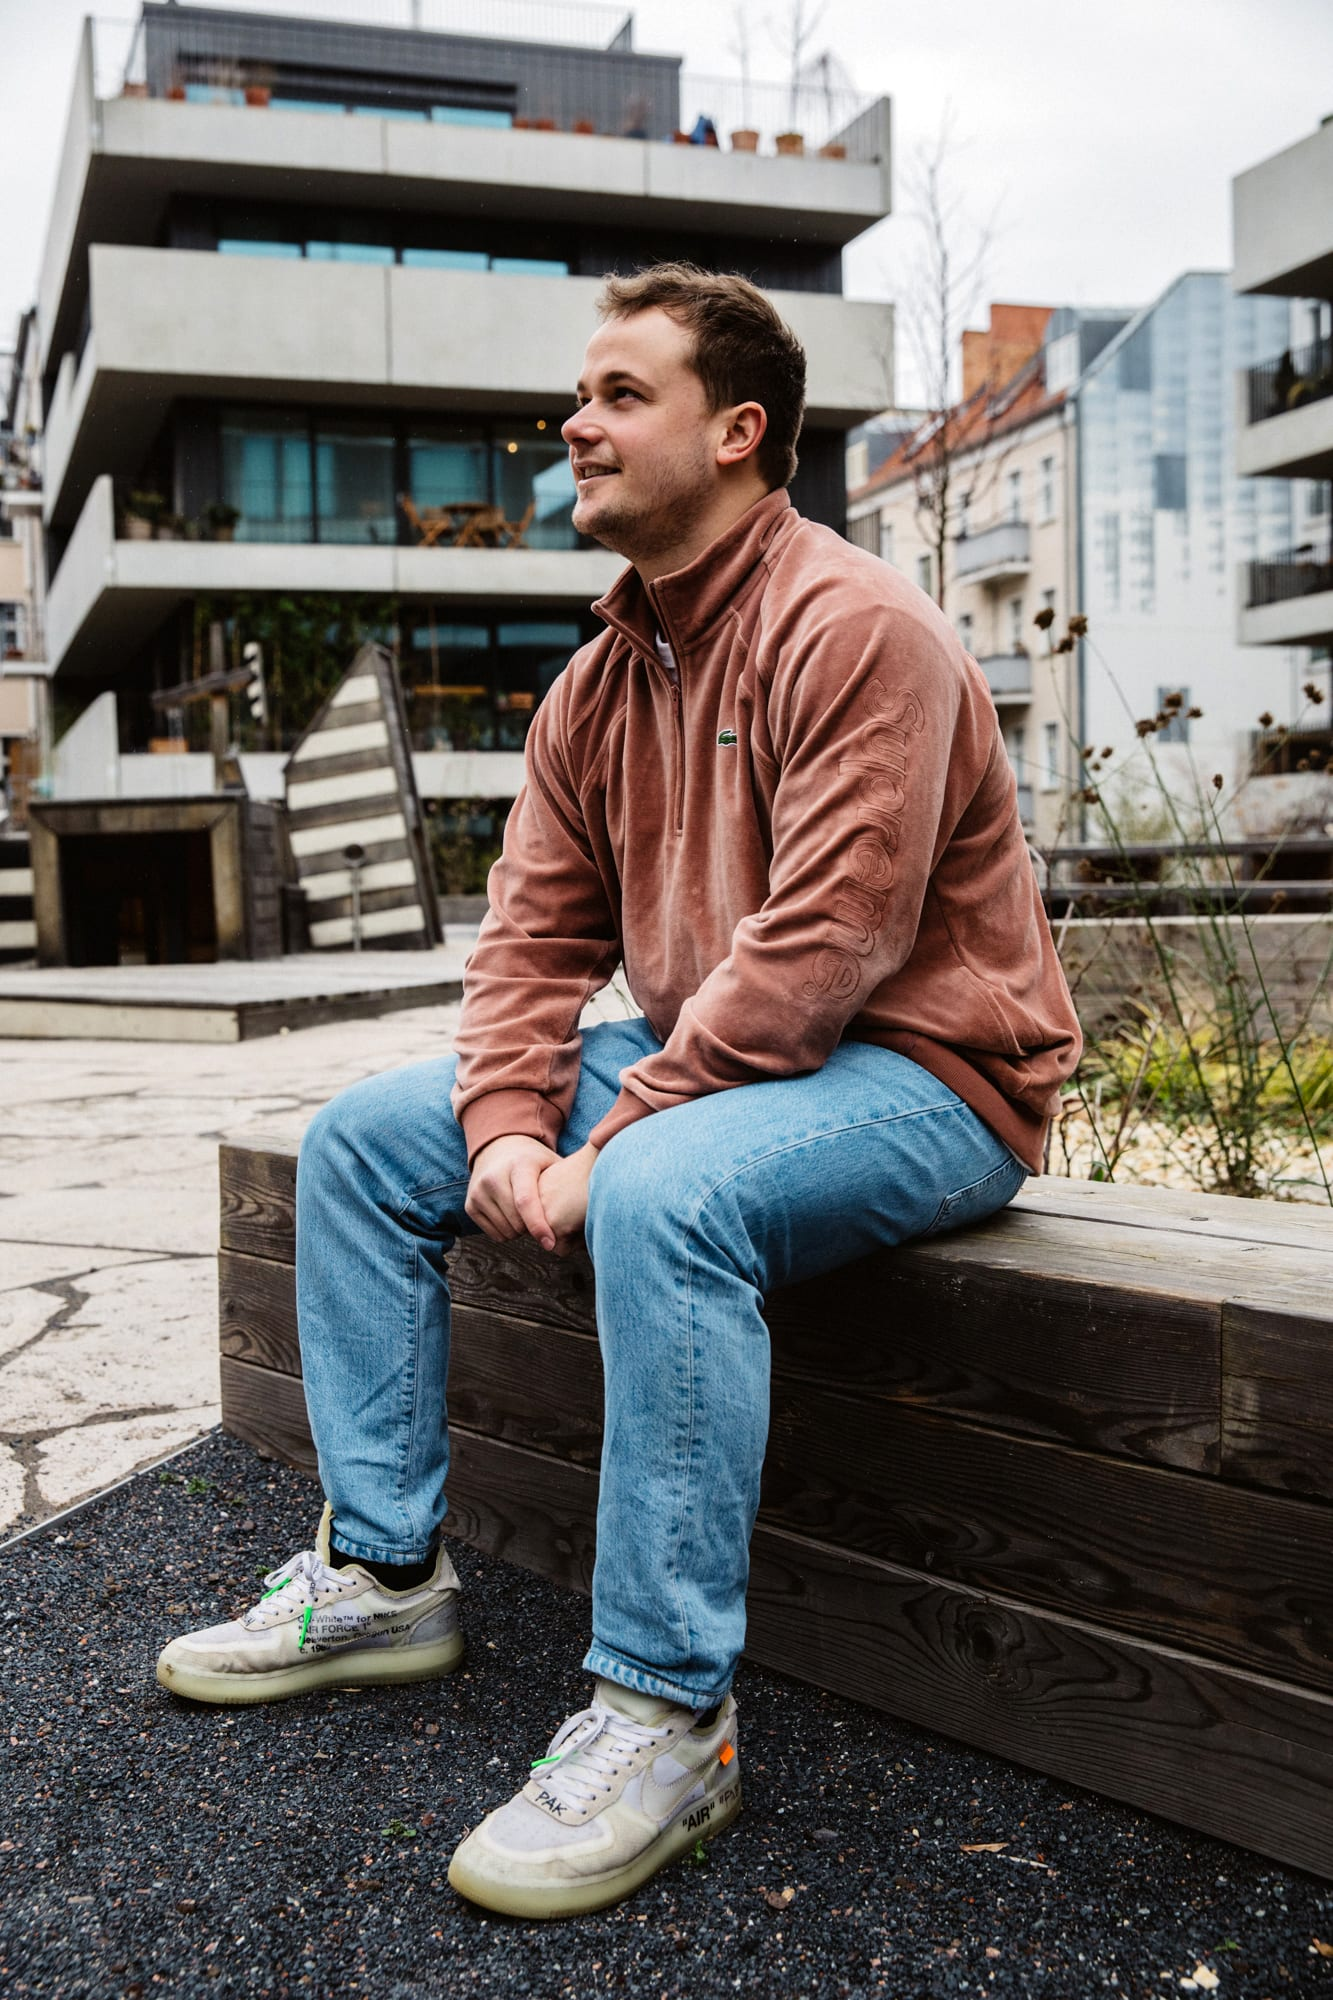 """Flight Case Sneakers: Fabian Gorsler at Home in Berlin, image features Off-White x Nike """"The Ten"""" Air Force 1"""